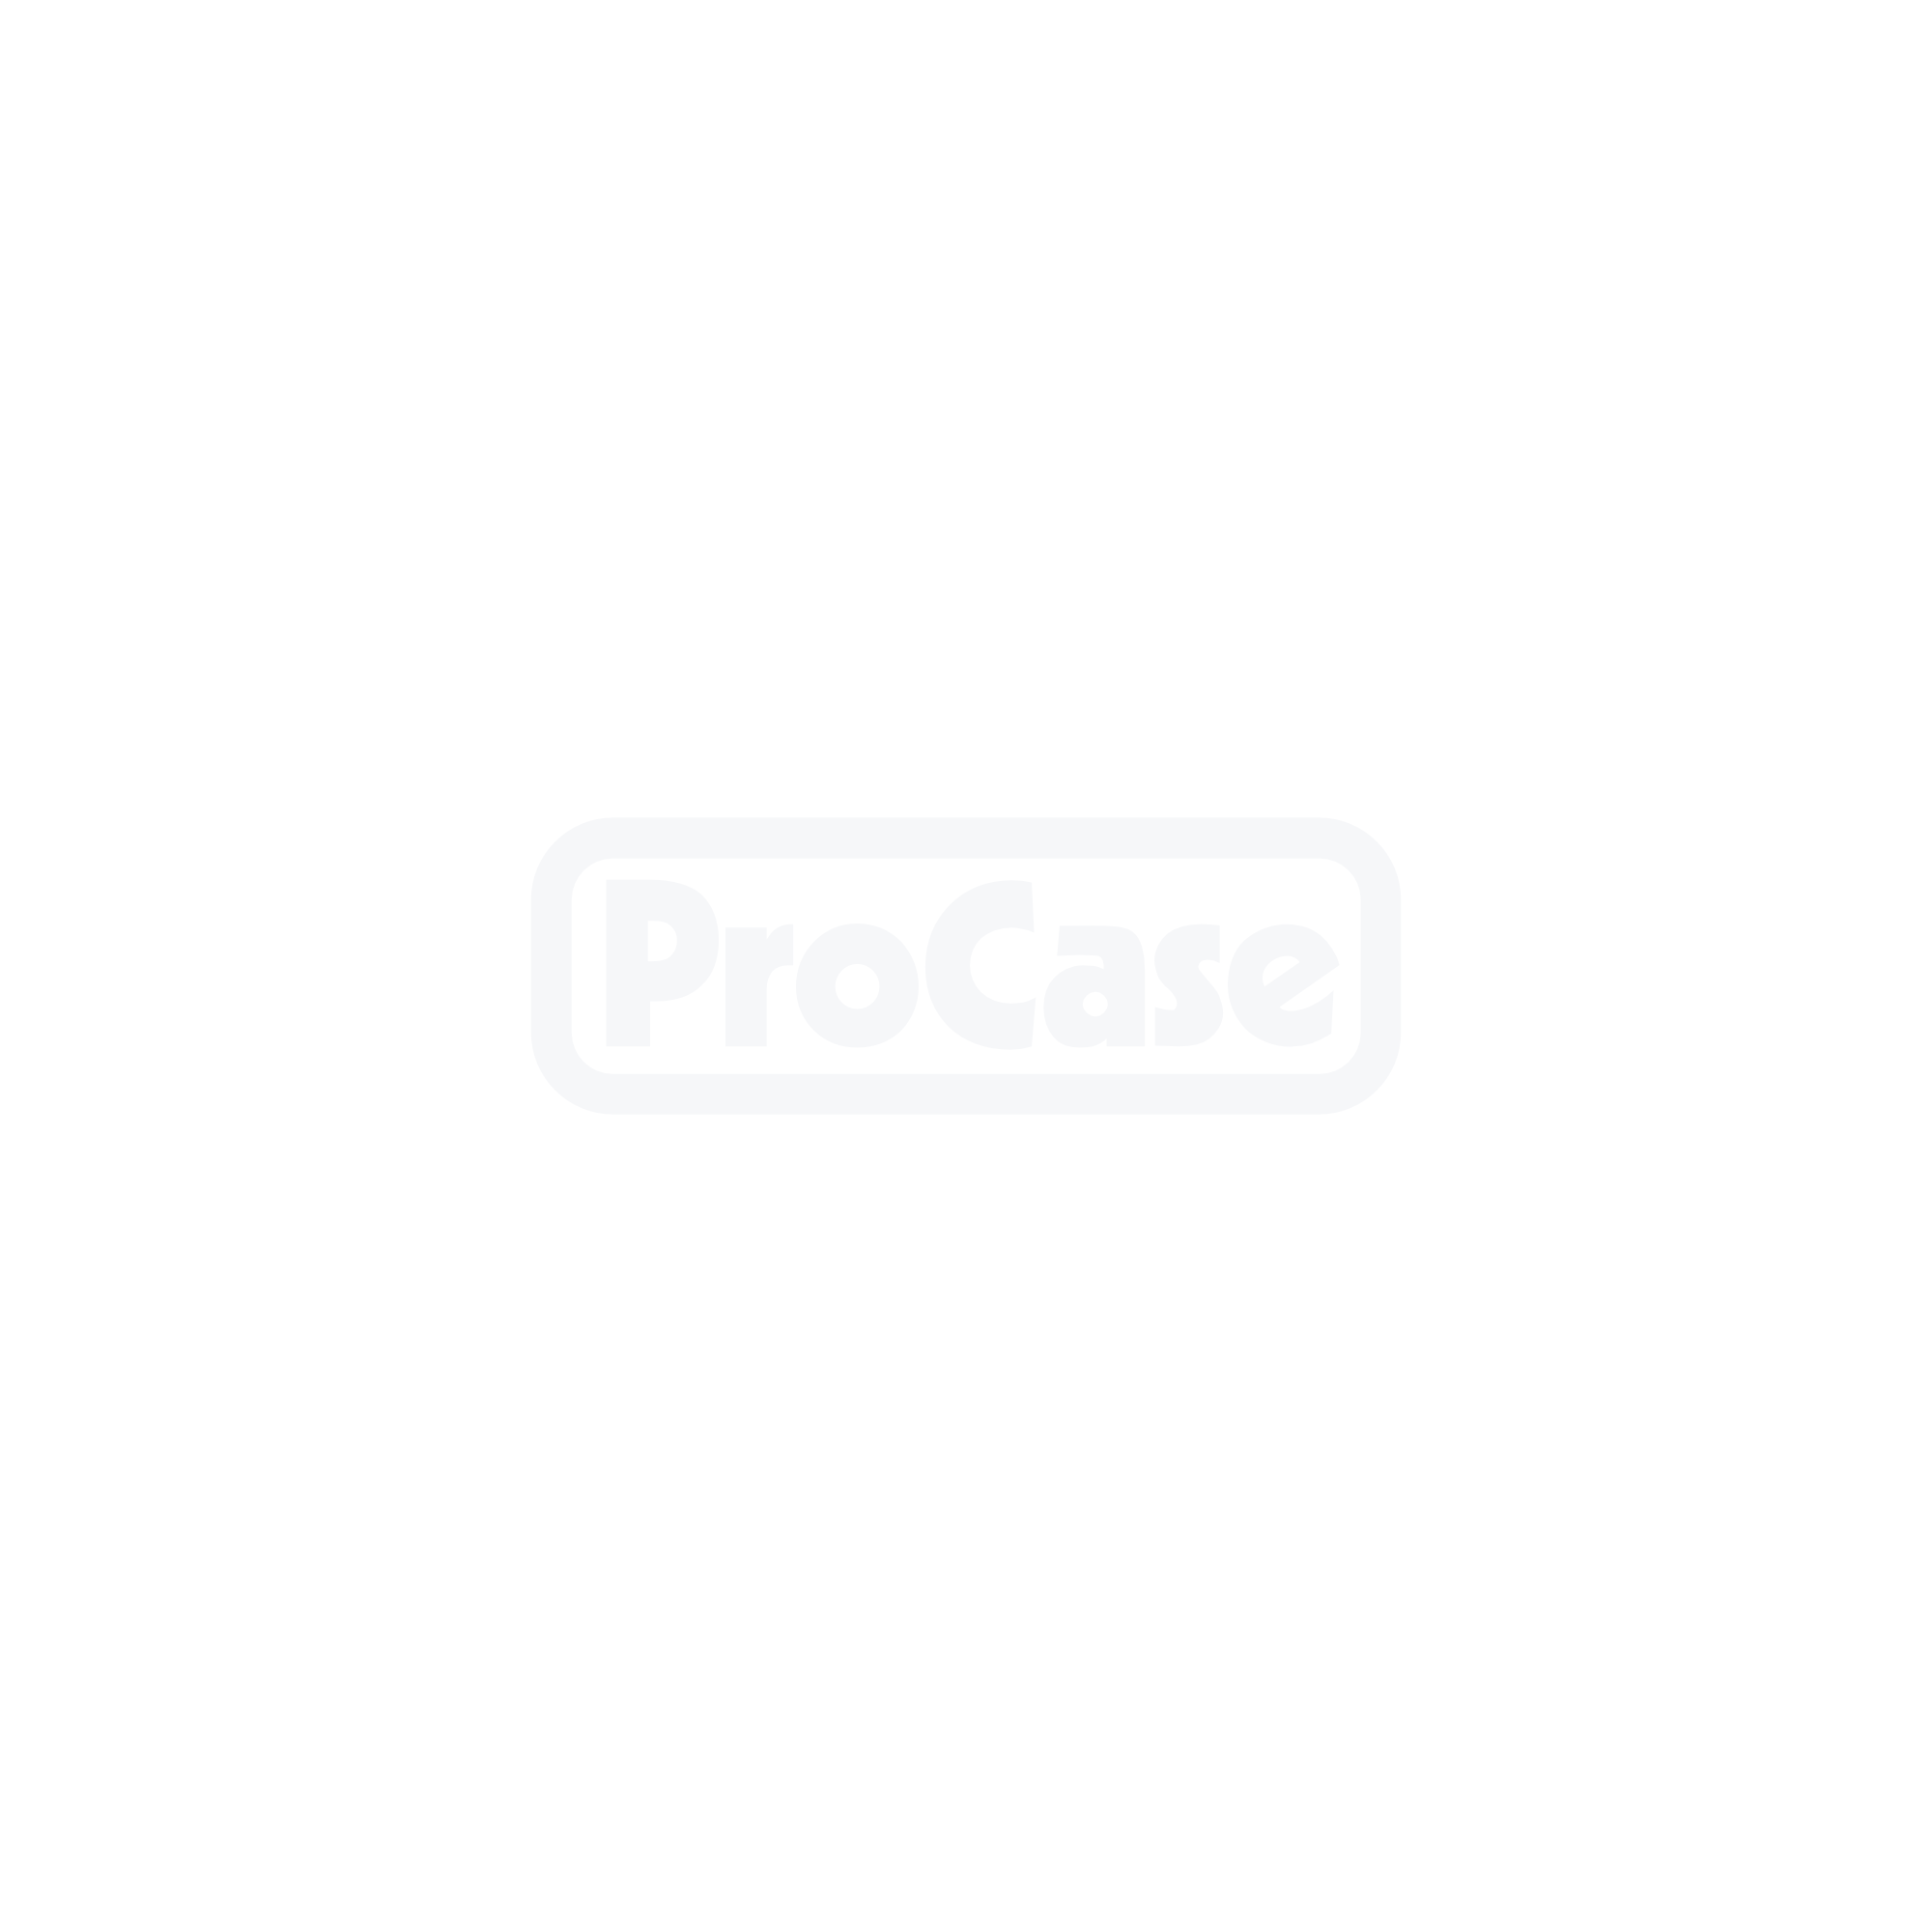 Flightcase für 3 LG M4224C-BA LCD Display 2